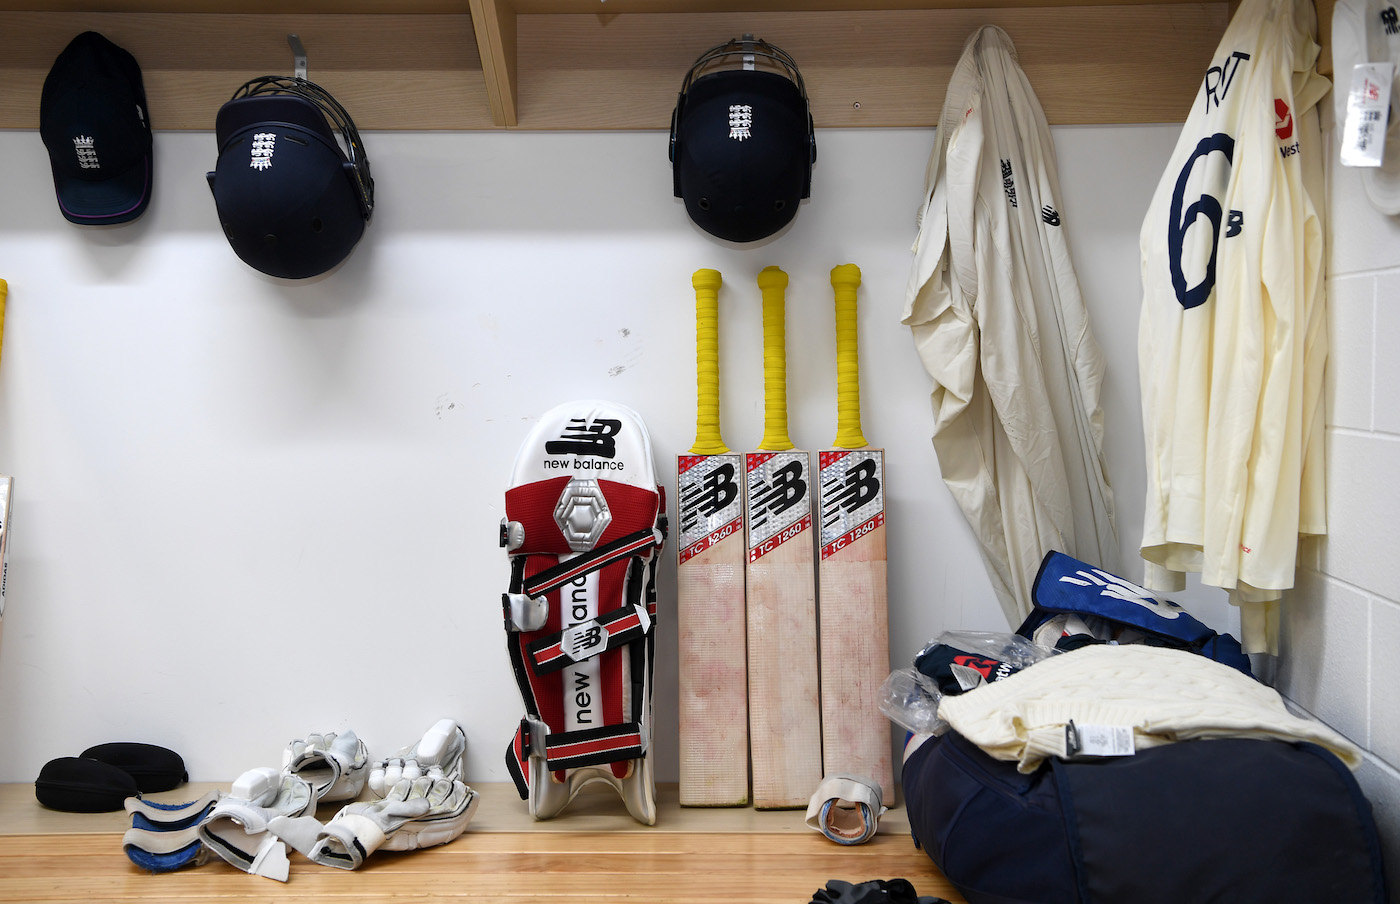 A place for everything and everything in its place: Joe Root's kit is set up and ready for demolition